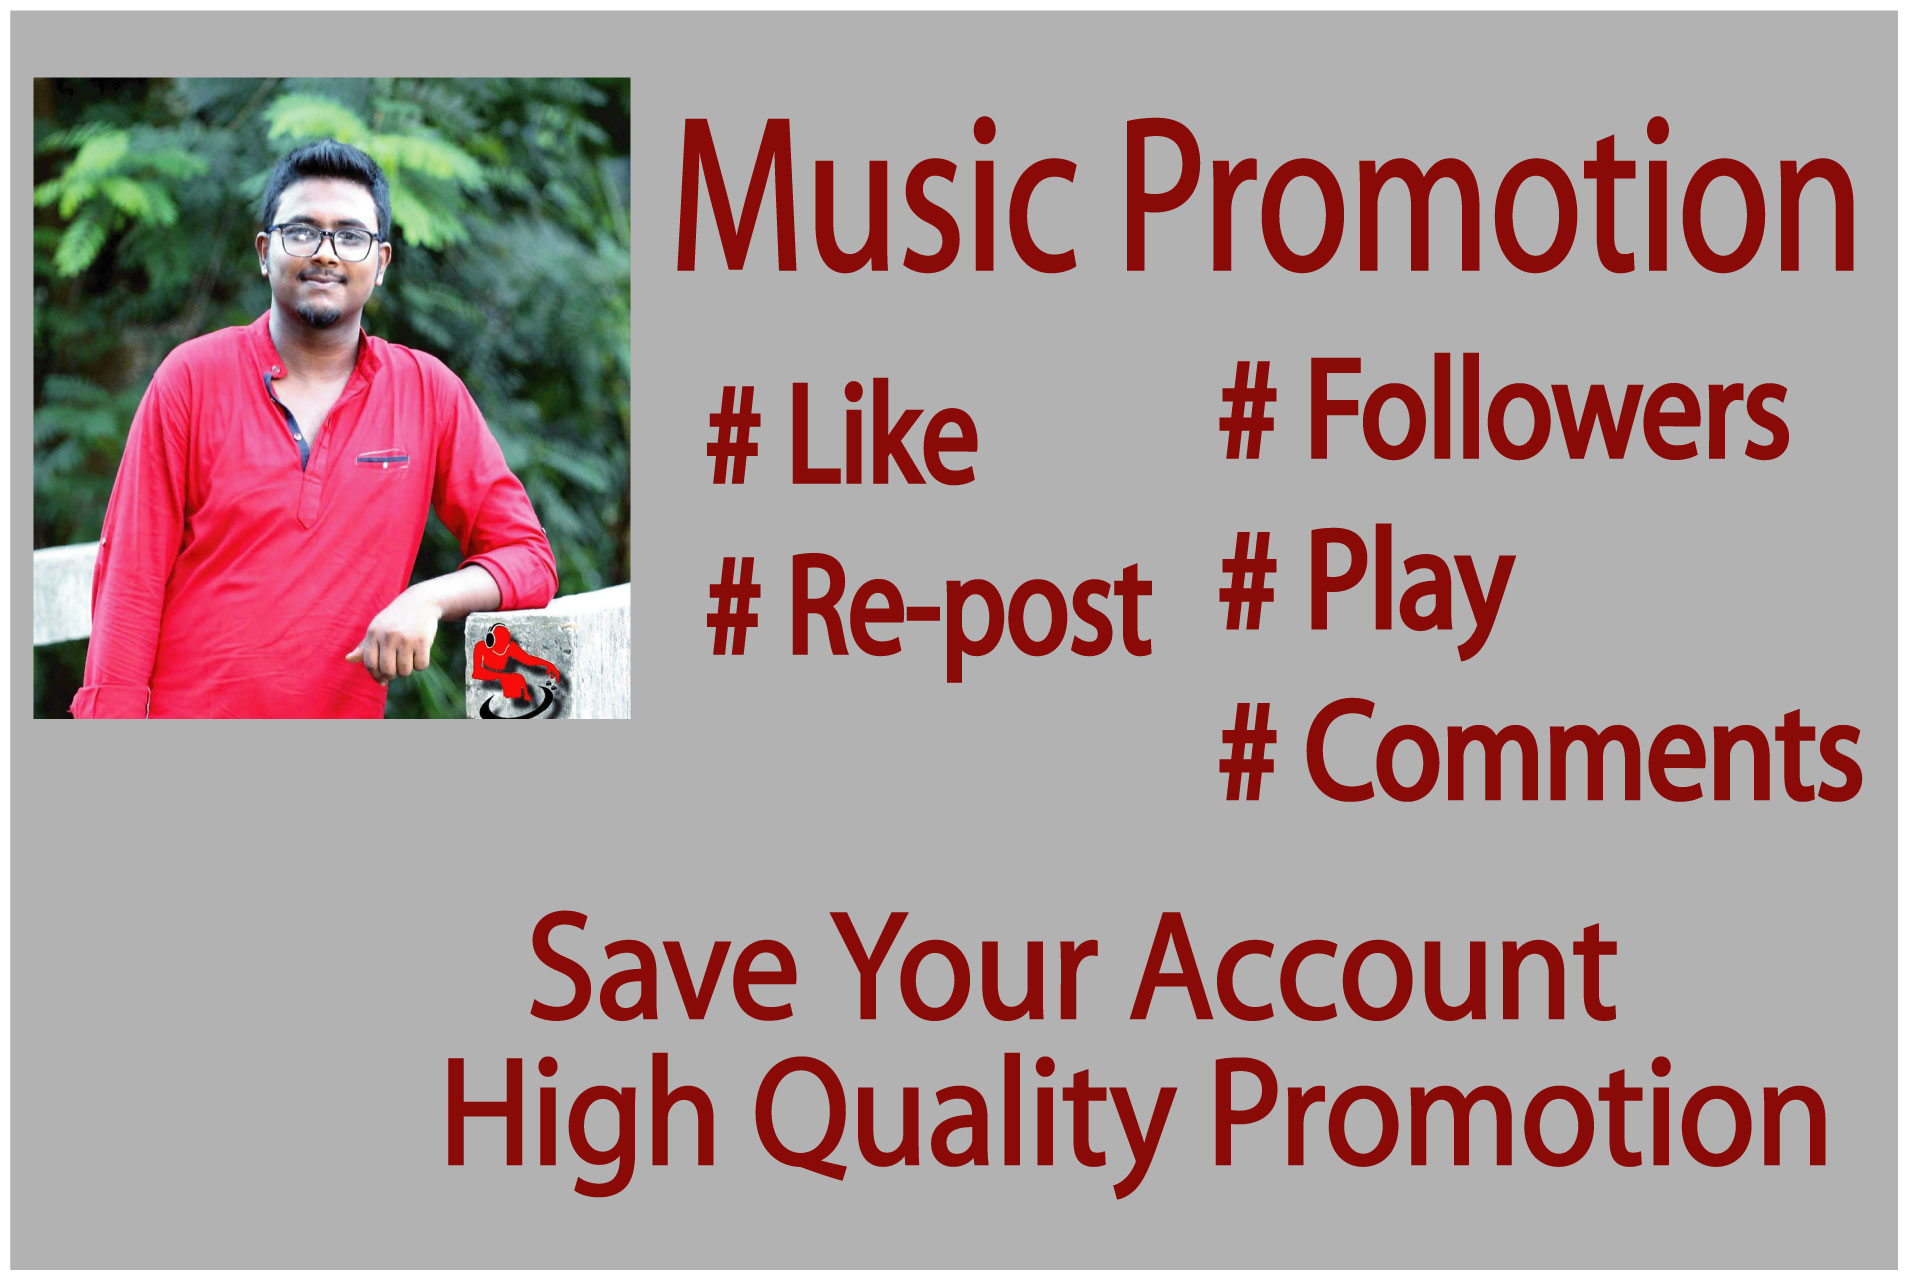 Buy 500K HQ Music Play With 100 Like and 100 Repost amp 20 Comments